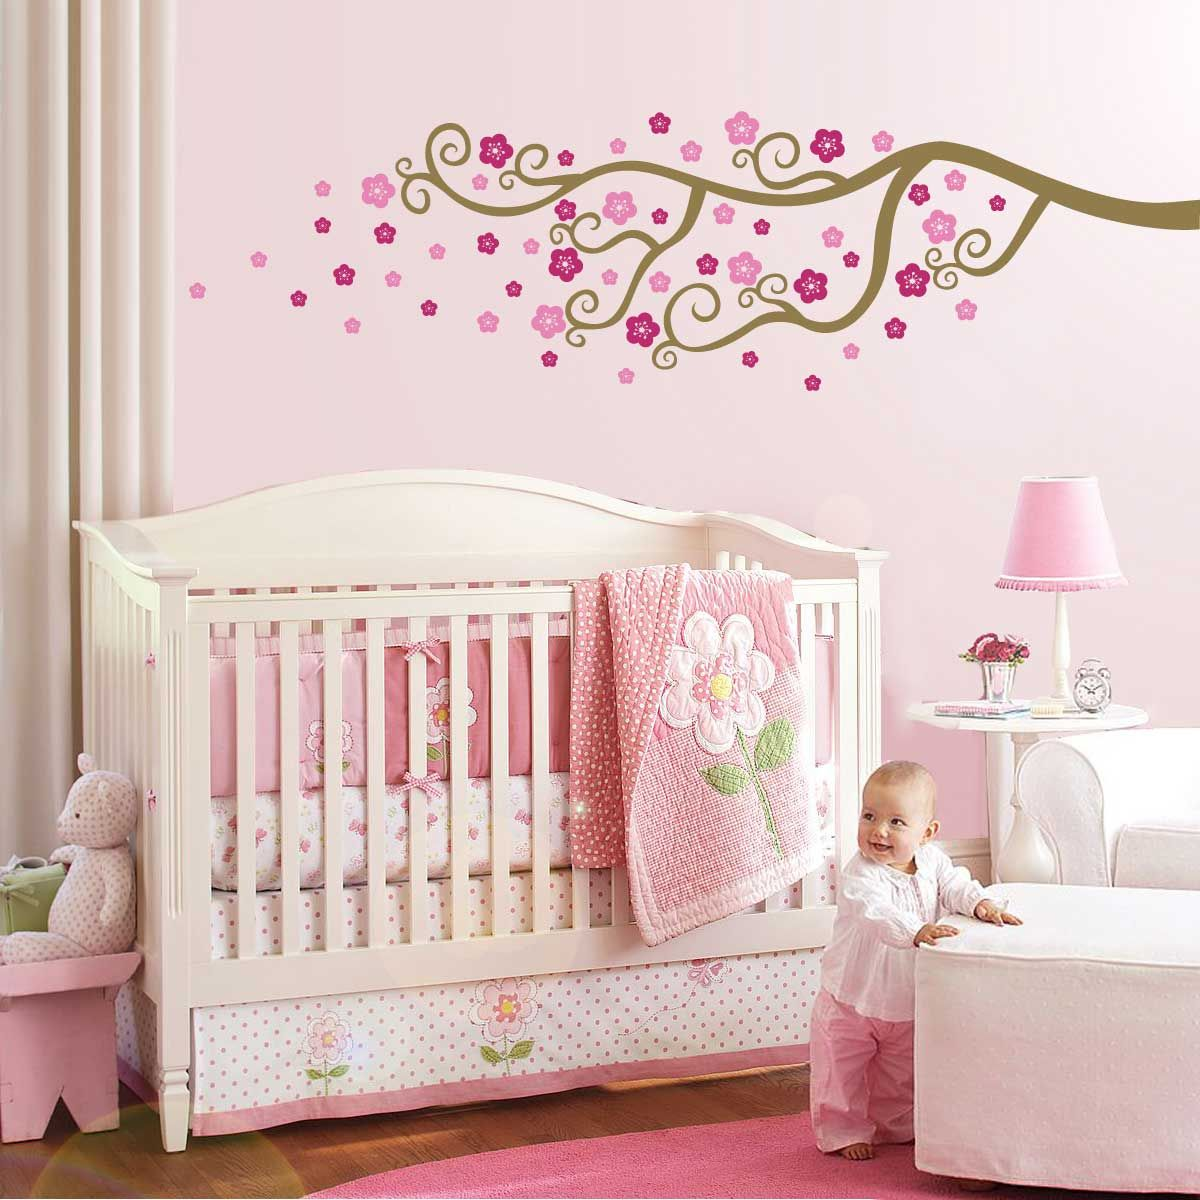 Pink Design Baby Room Ideasღby Mildz Christer Belgaღ - Baby rooms designs